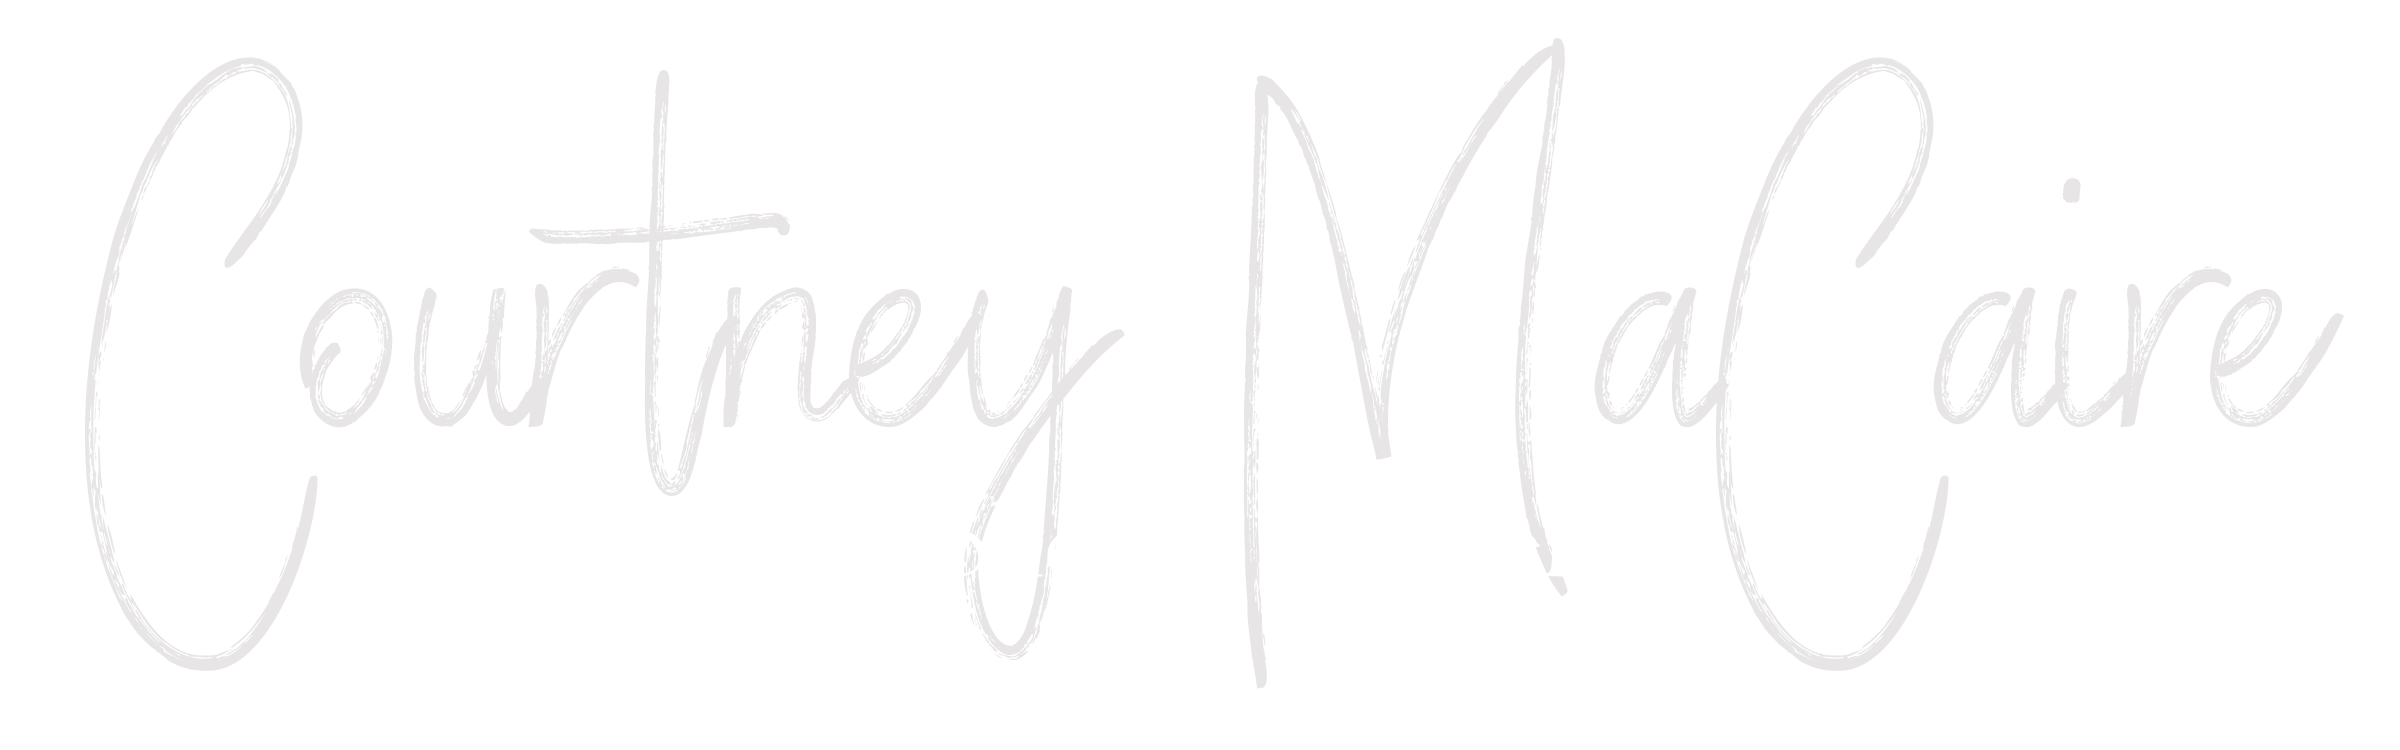 Kansas City Photographer + Storyteller